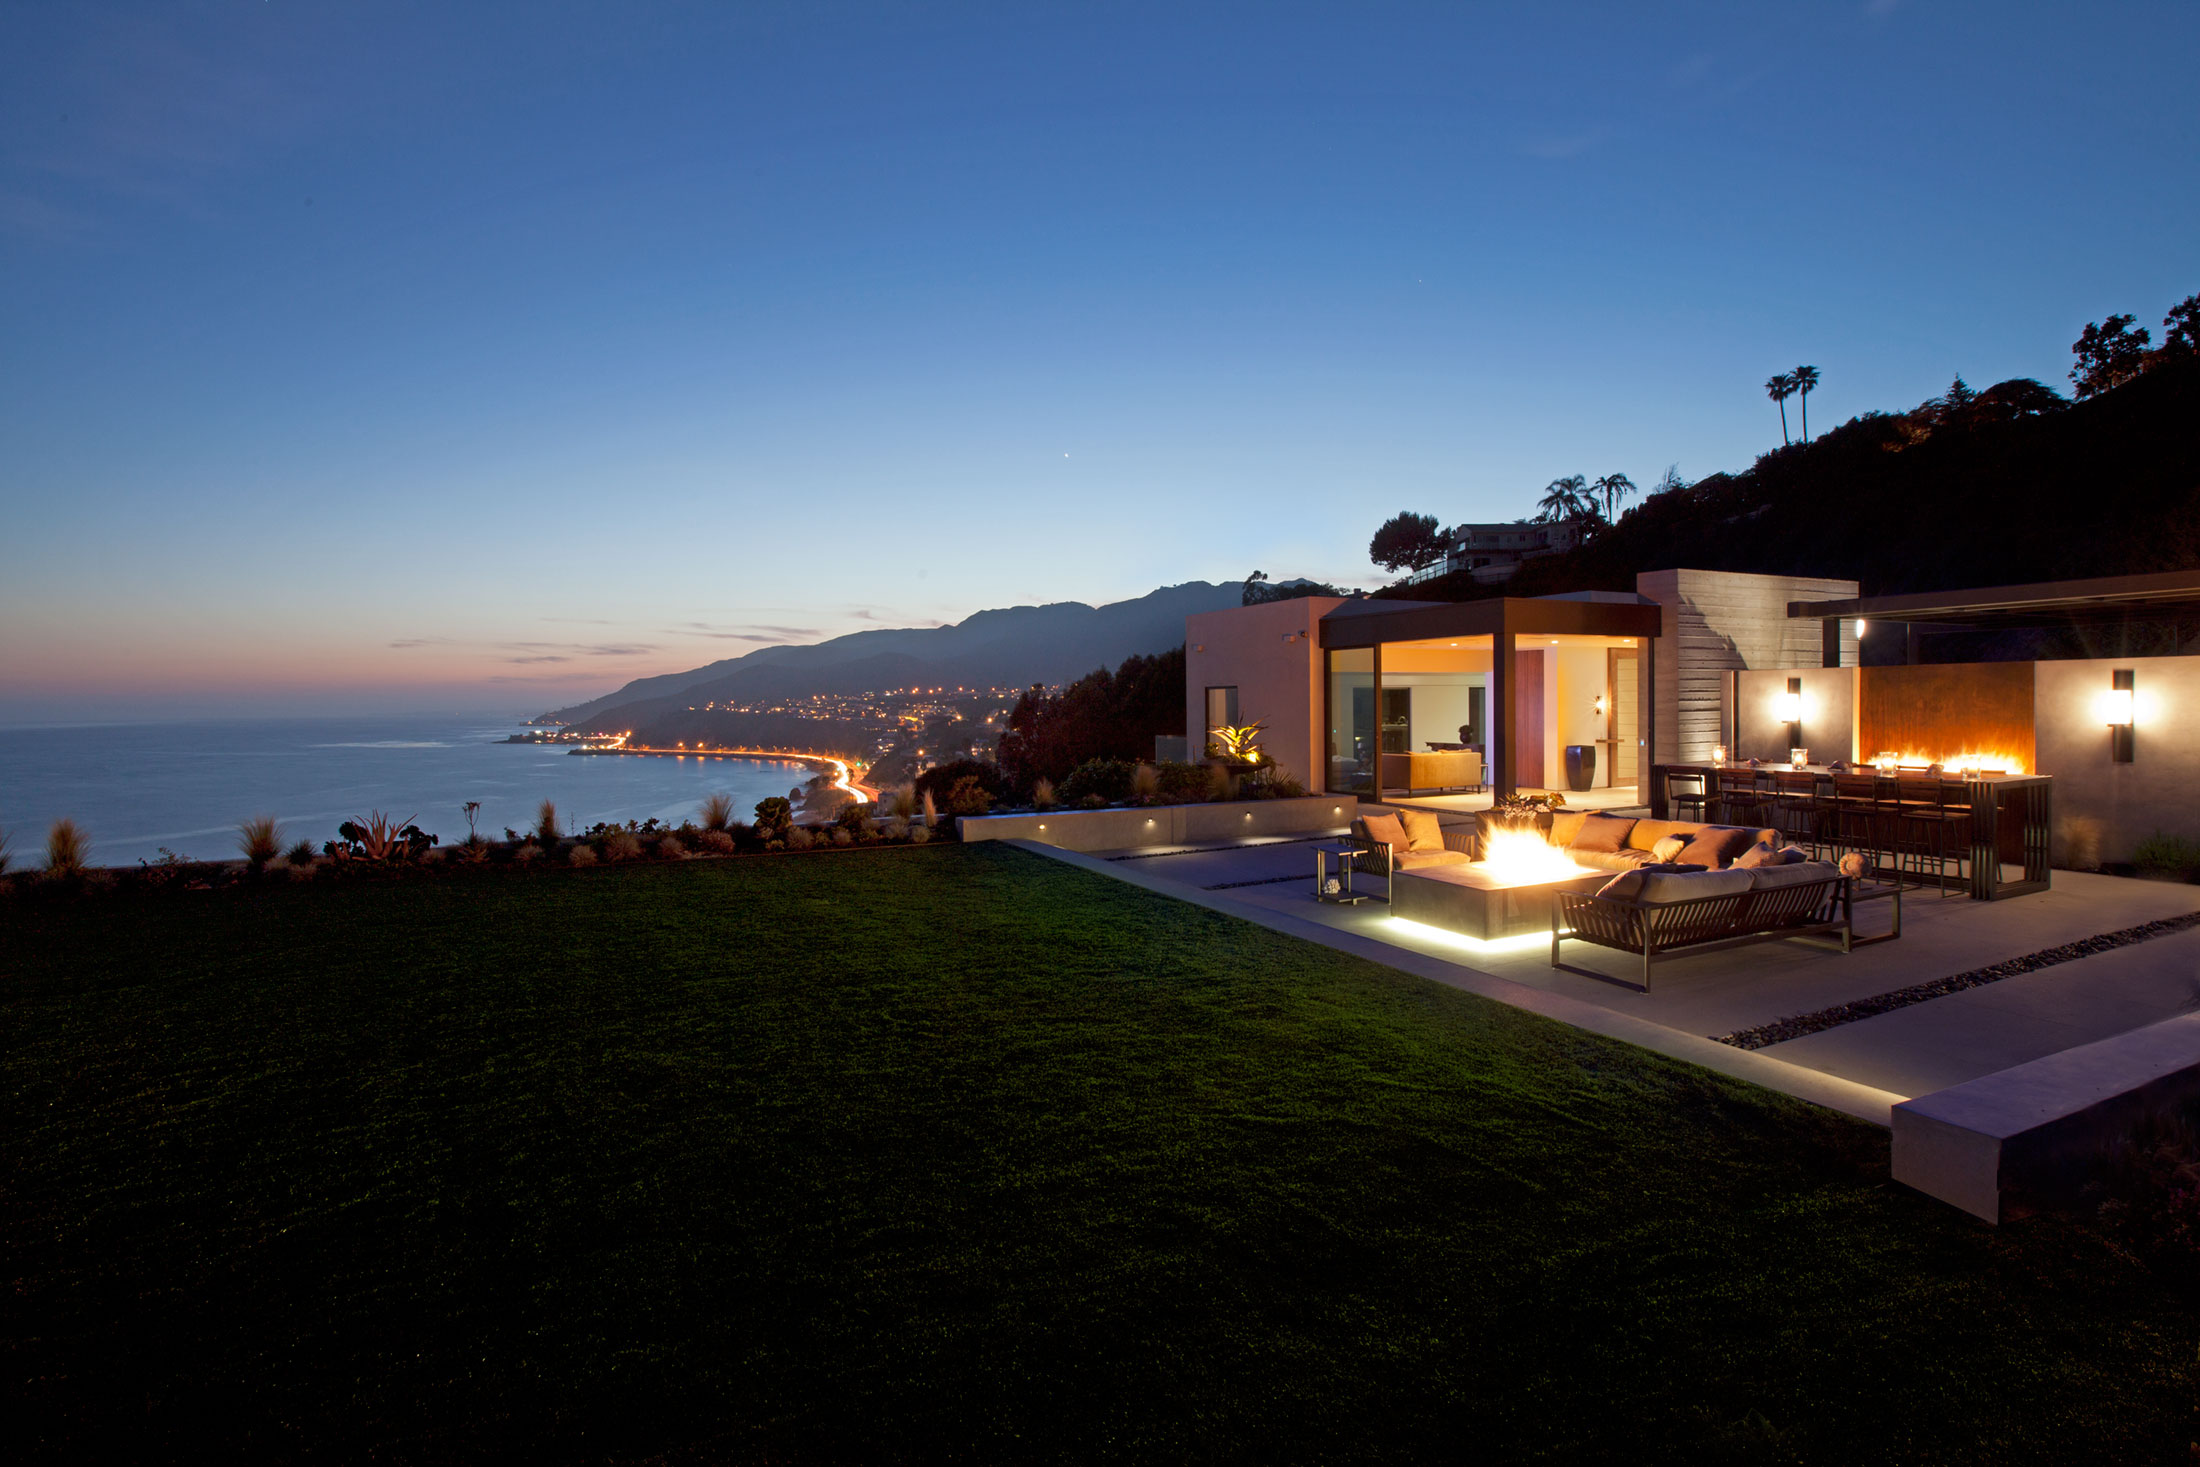 modern-architecture-residential-remodel-indoor-outdoor-inspirational-view-shubindonaldson-revello-residence-2